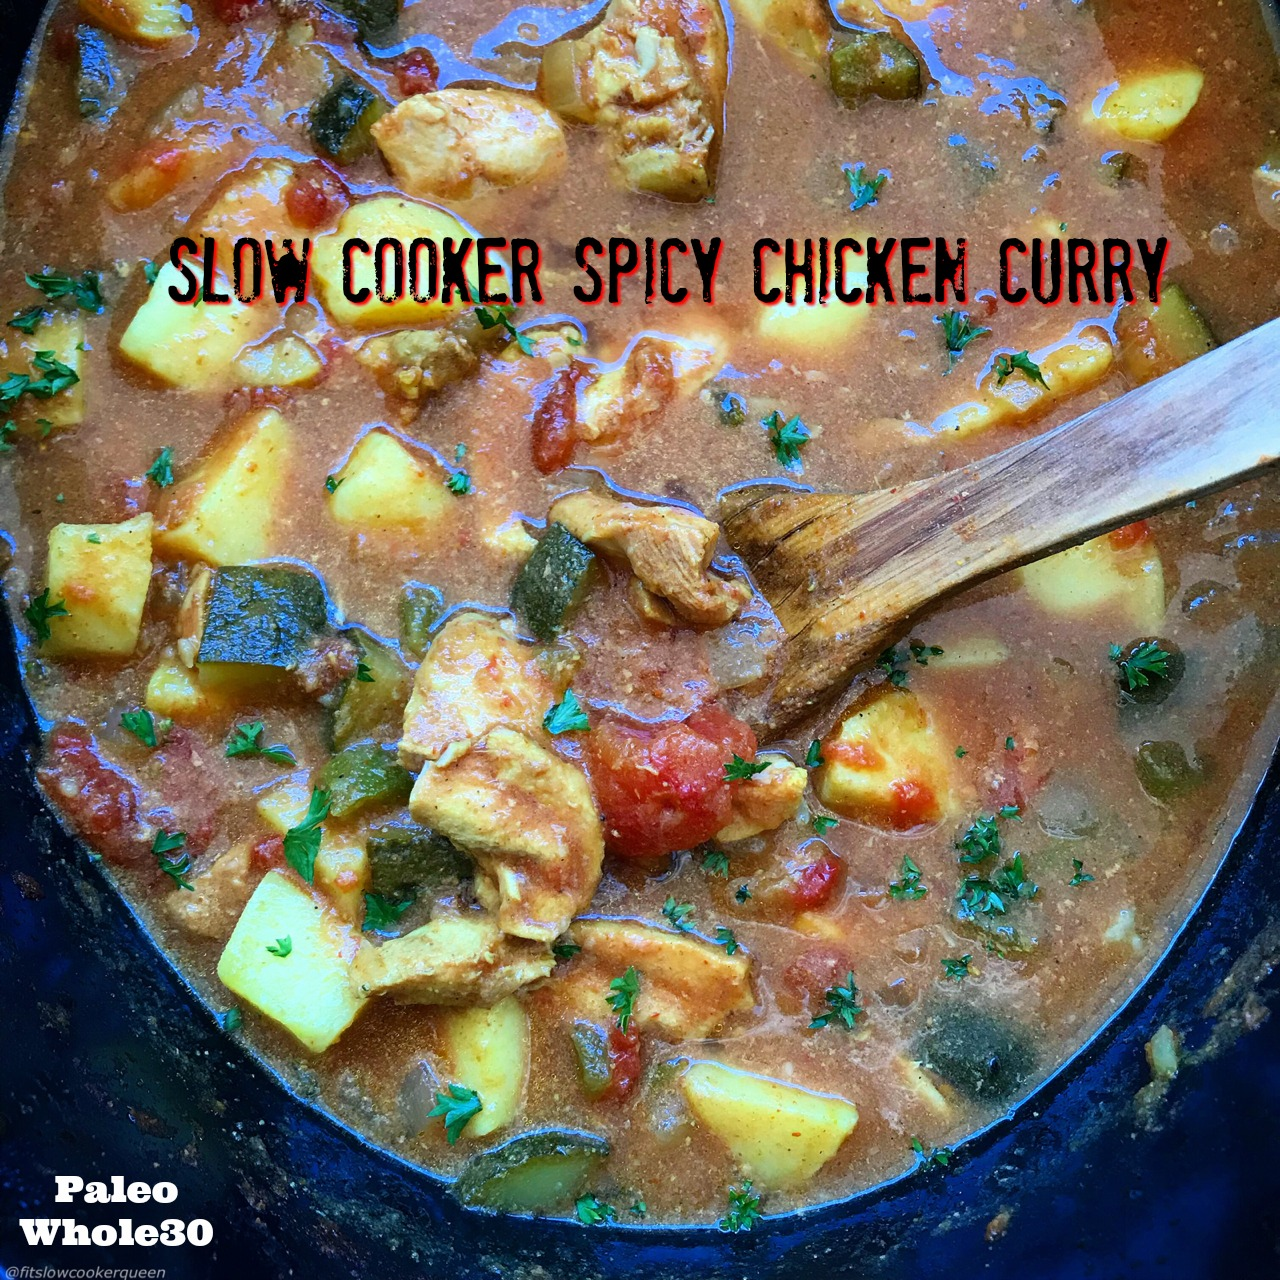 This Indian-flavored spicy chicken curry is not just an aromatic and flavorful dish, it's paleo, whole30 compliant, and super easy to make. Sit back and let your slow cooker create a delicious curry.